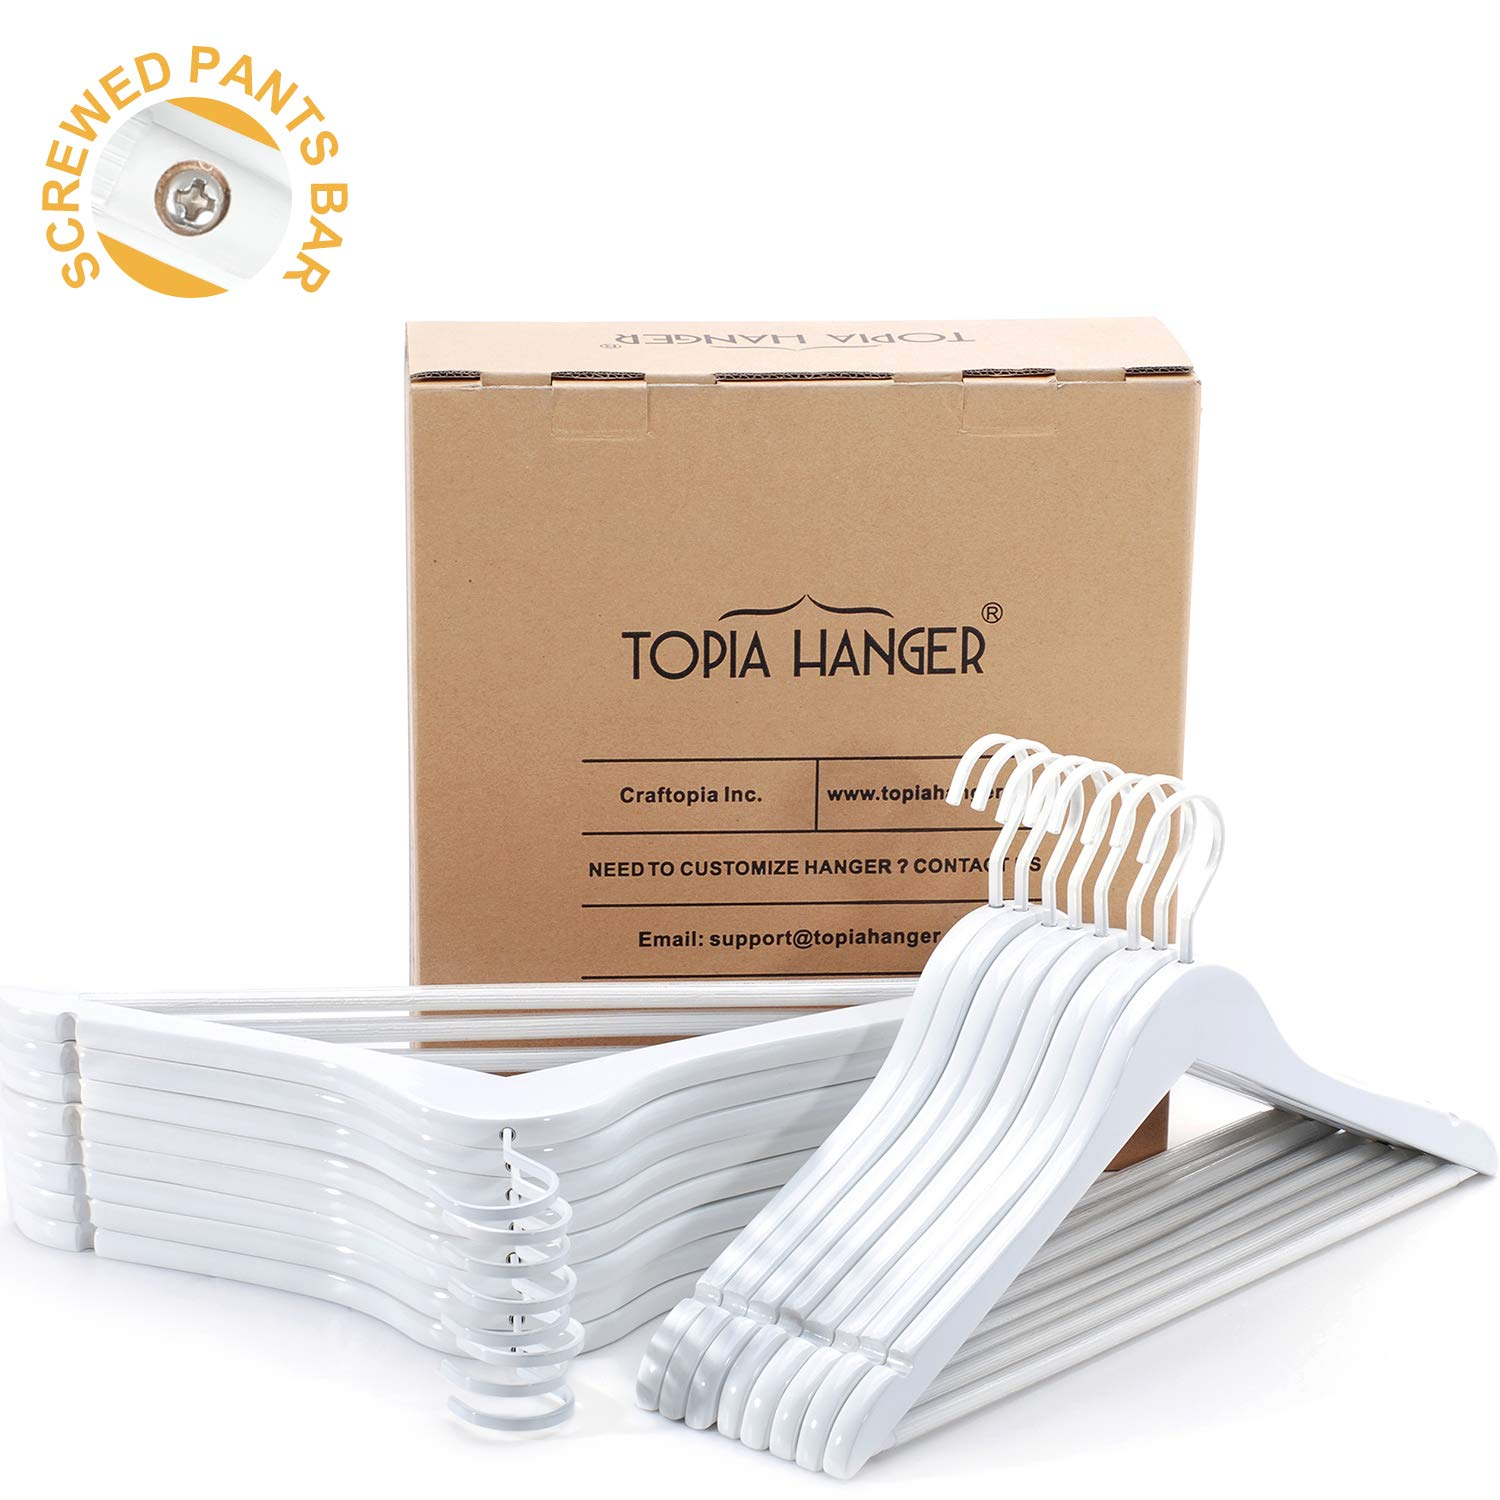 TOPIA HANGER Extra Strong White Wooden Suit Hangers, Luxury Wood Coat Hangers, Glossy Finish with Extra Thick Hooks&Anti-Slip Bar 16-Pack CT01W by TOPIA HANGER